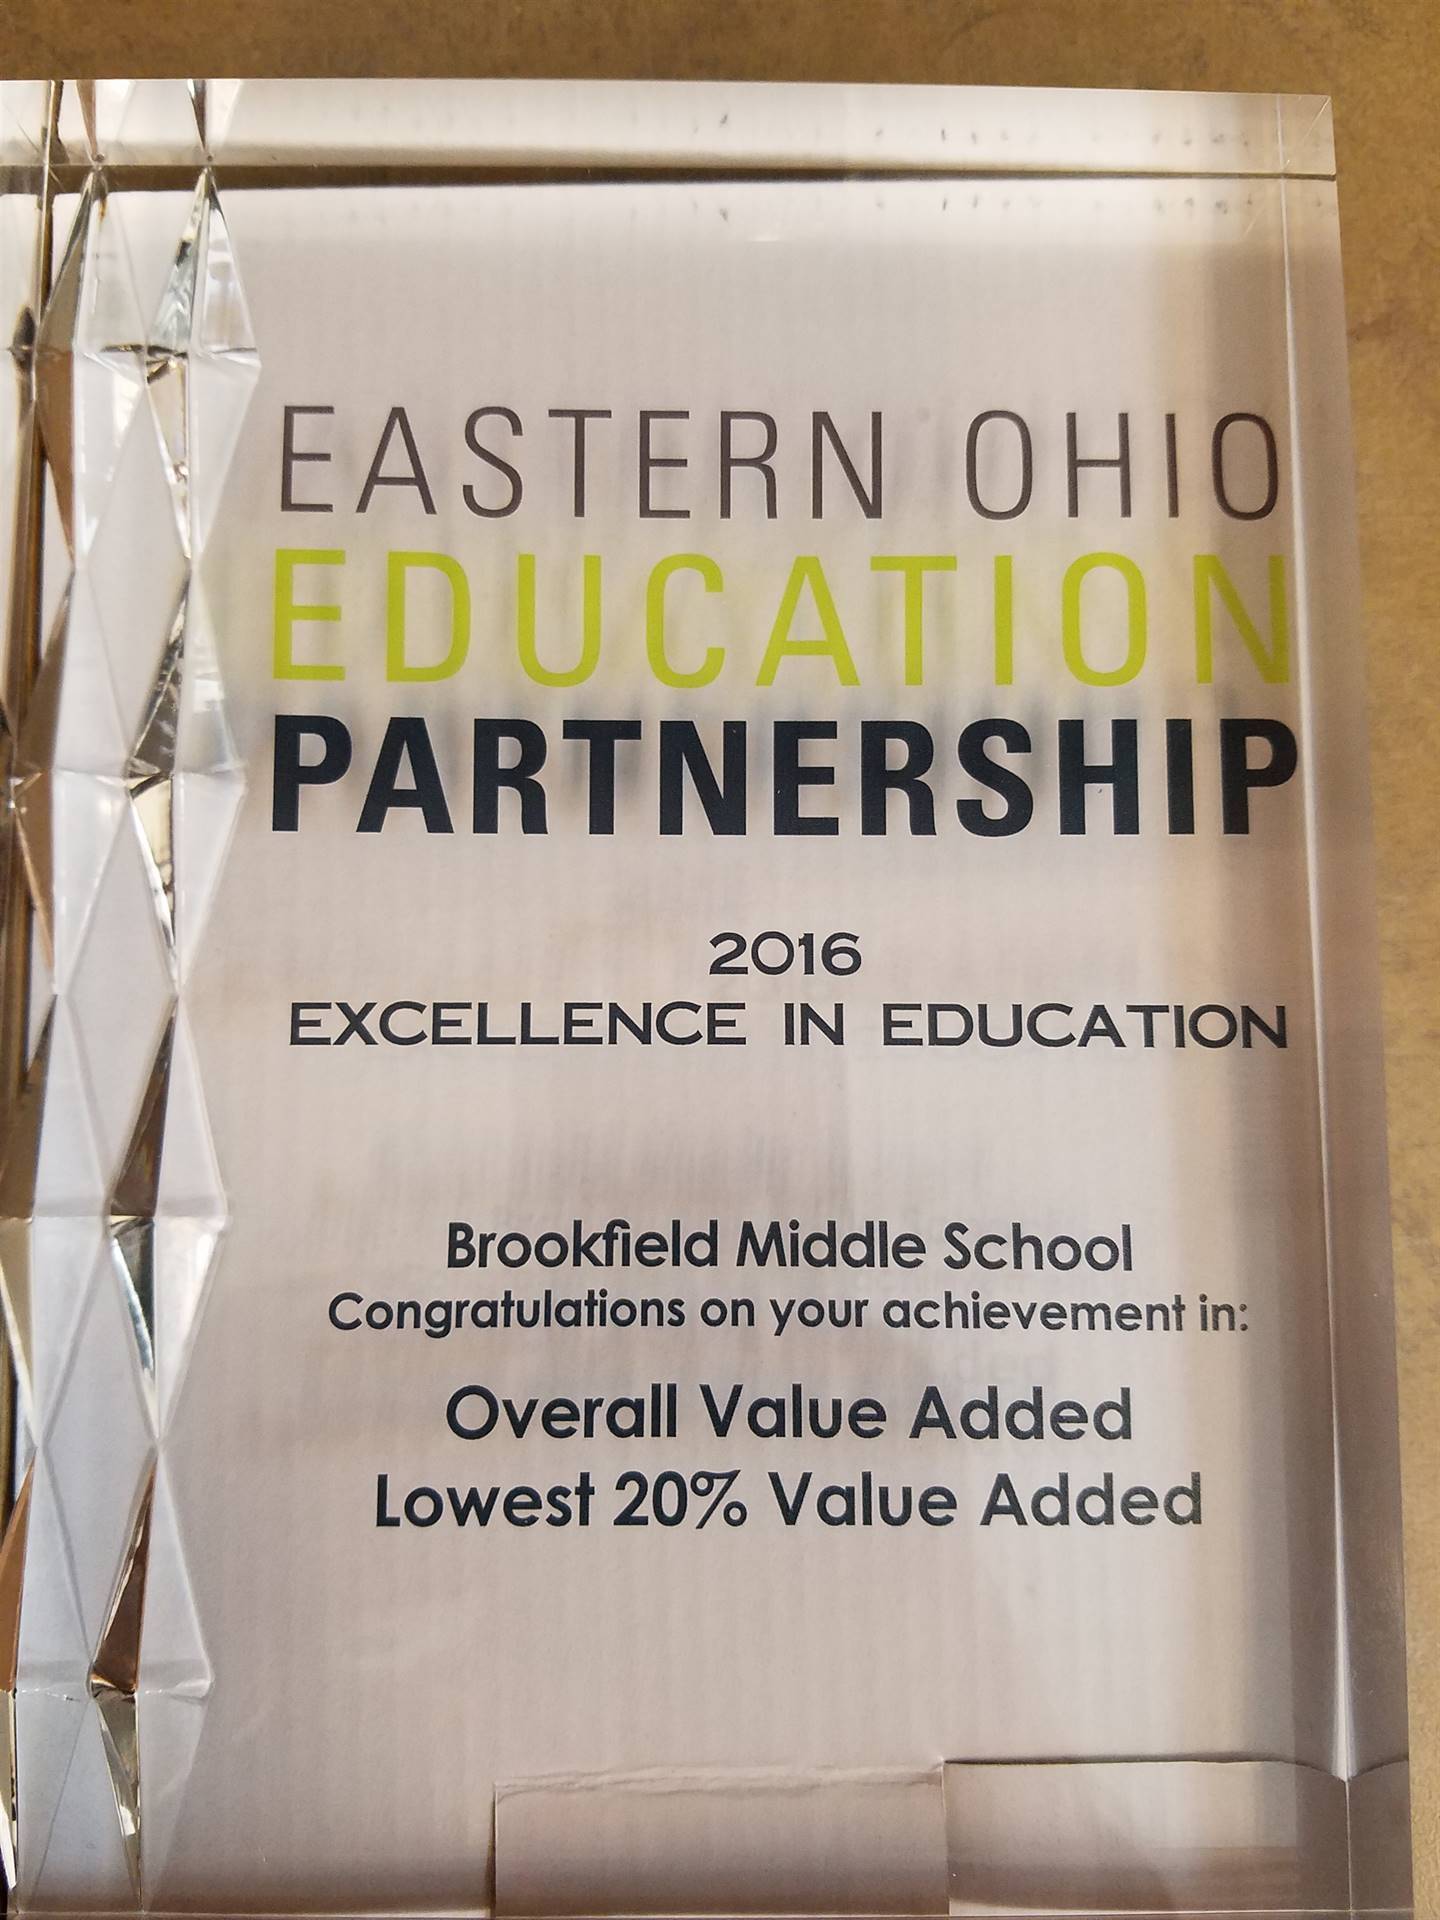 2016 Eastern Ohio Partnership Excellence in Education